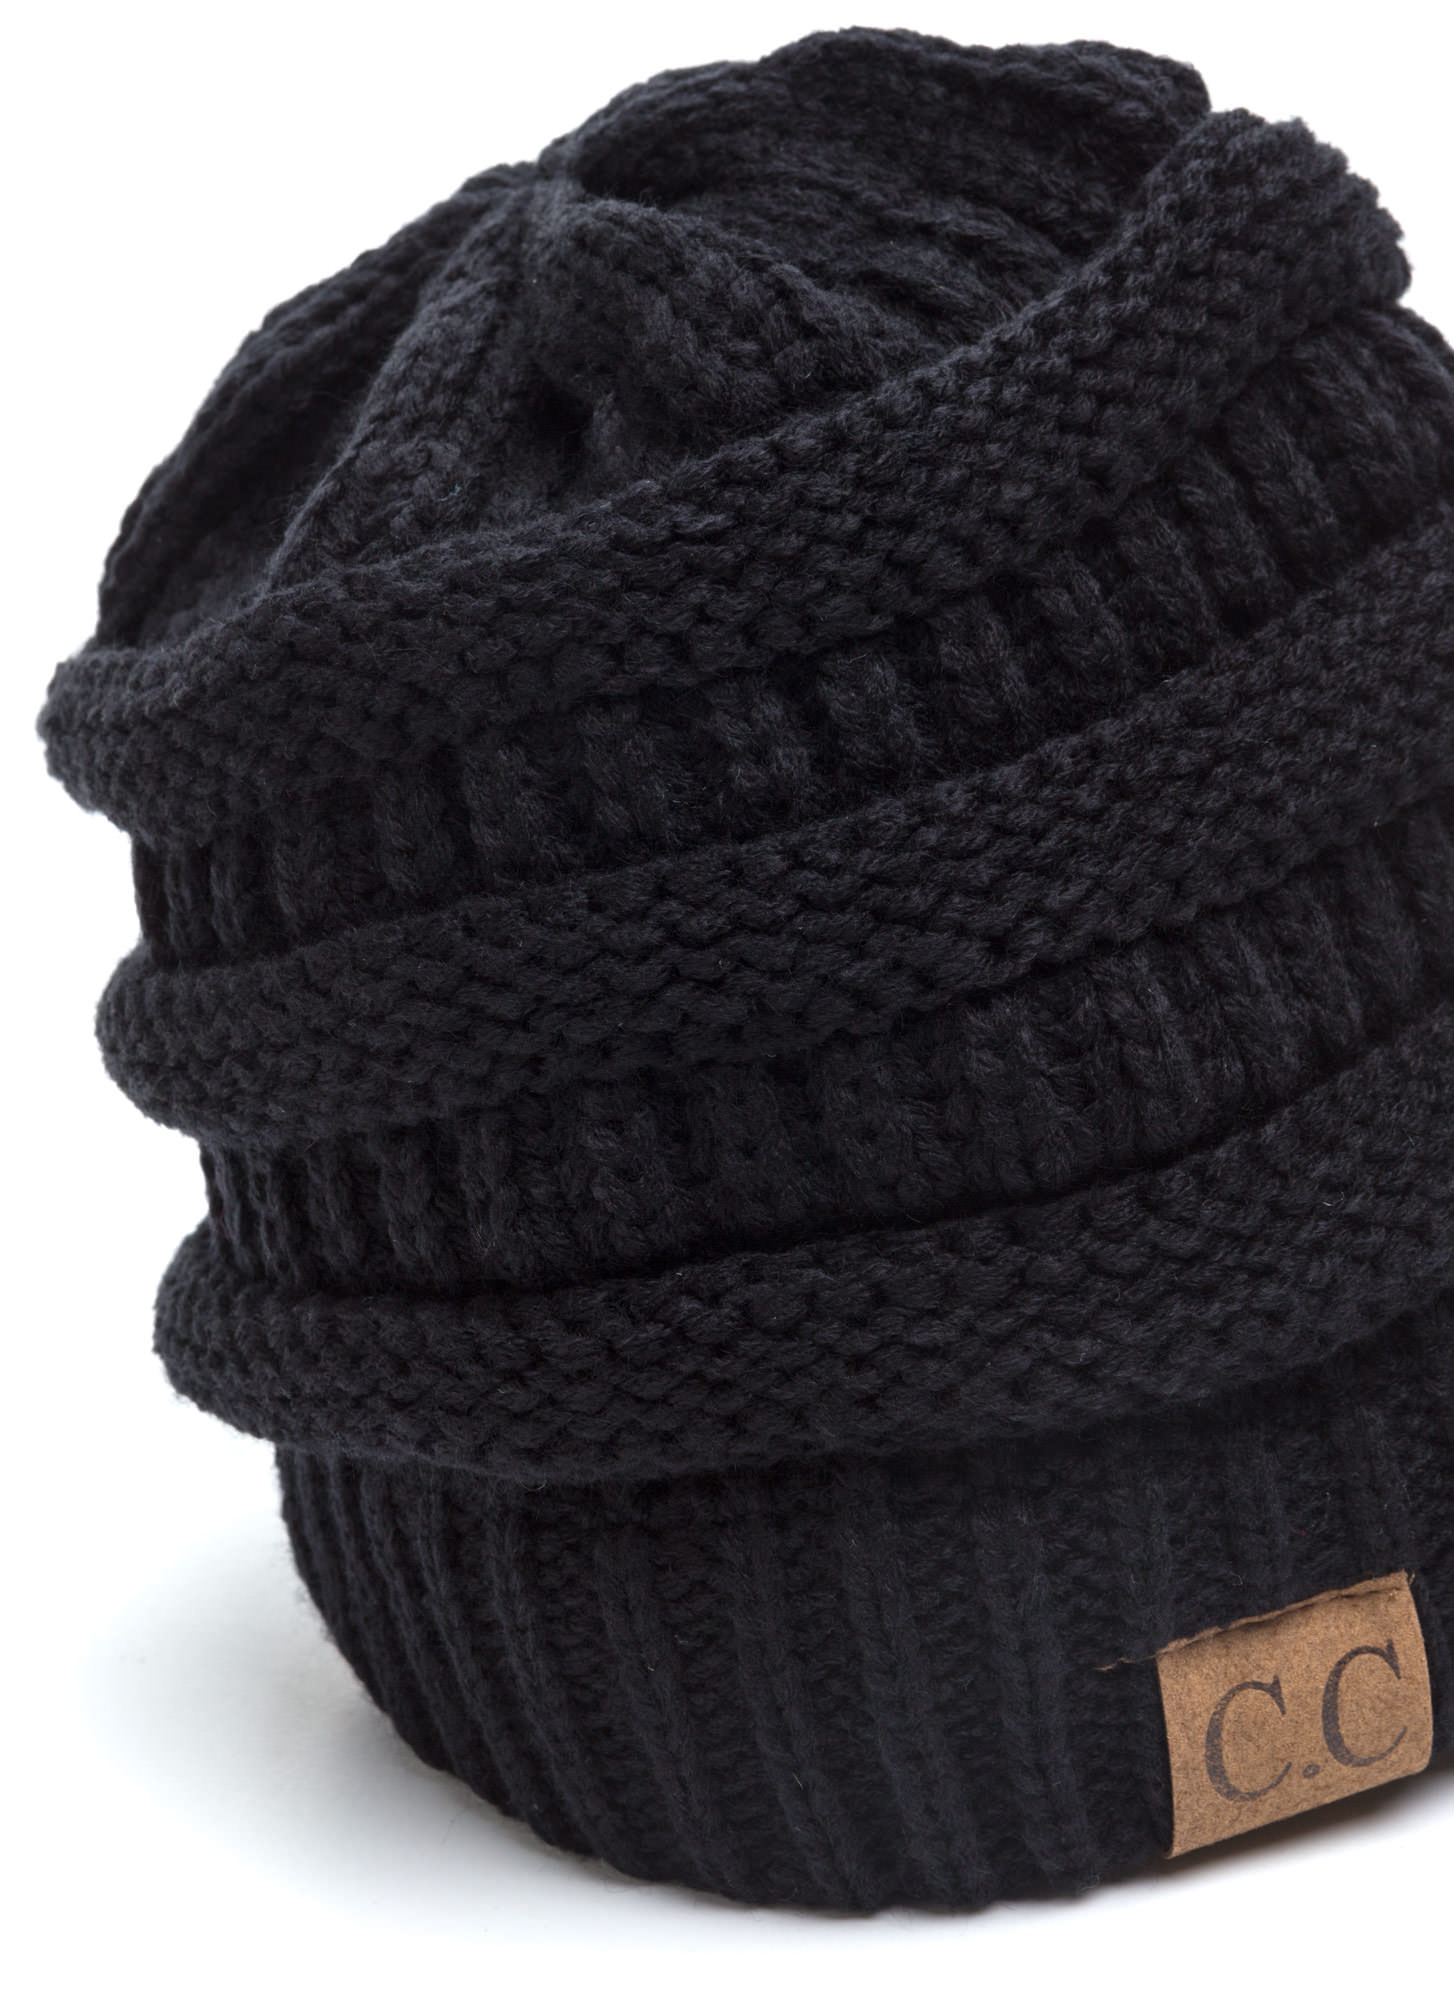 Cozy CC Cable Knit Beanie BLACK (Final Sale)